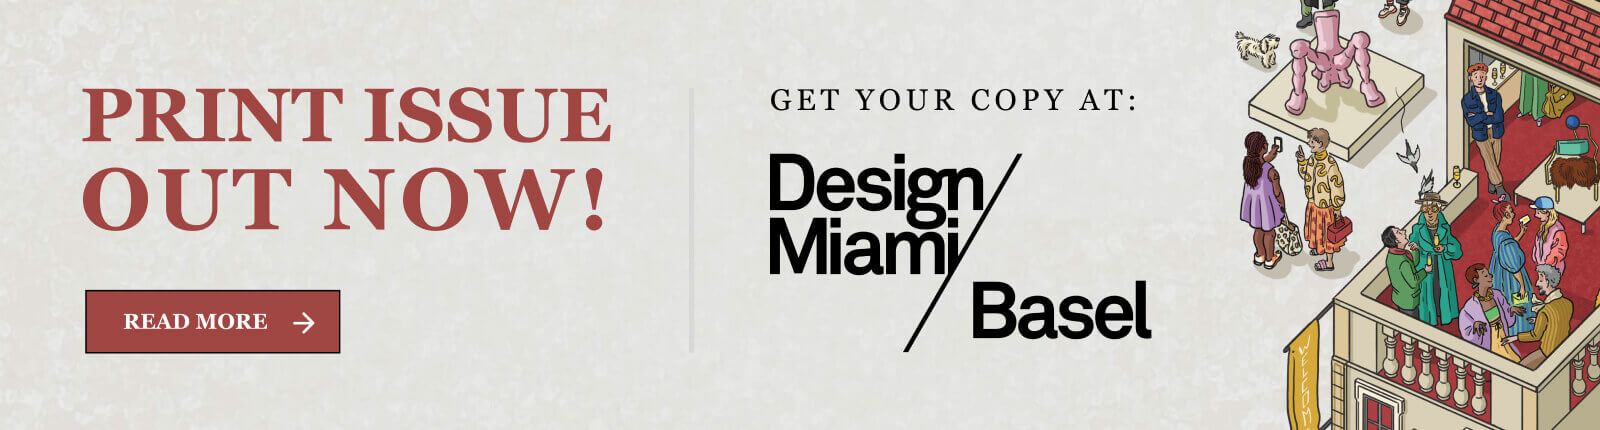 Print Issue Out Now - Get your copy at Design Miami / Basel